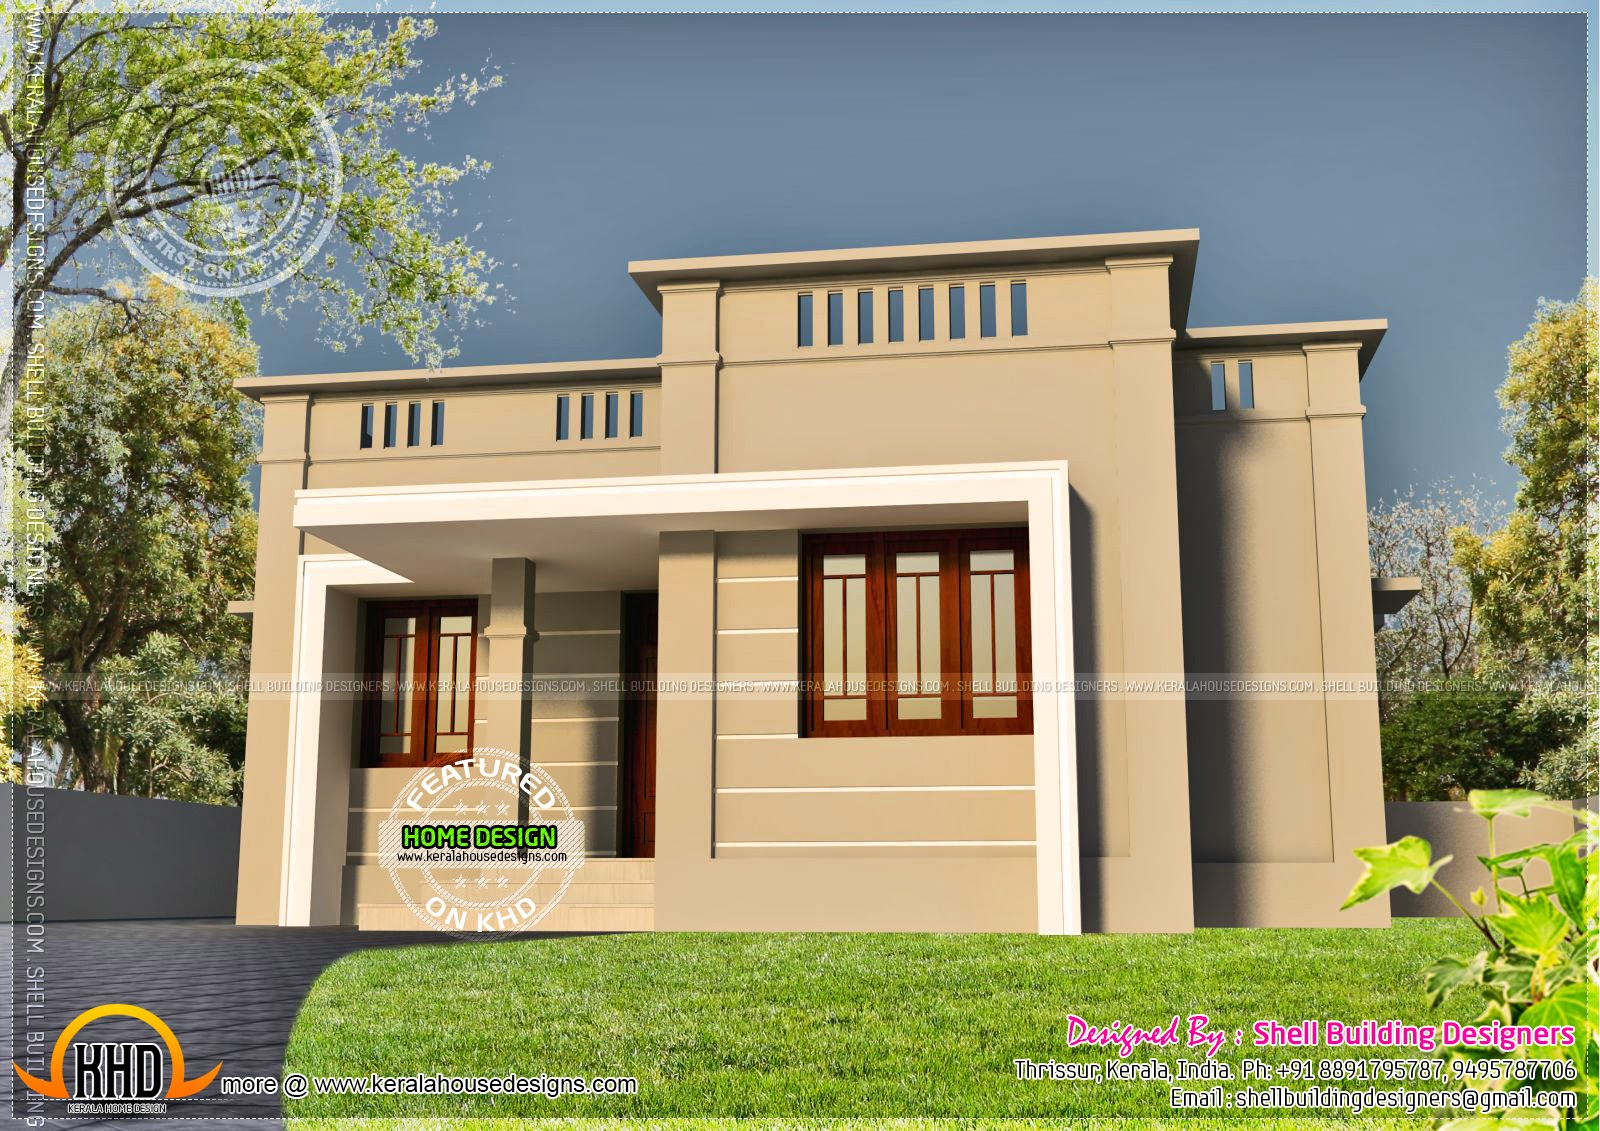 Very small house exterior kerala home design and floor plans for Small house design kerala style